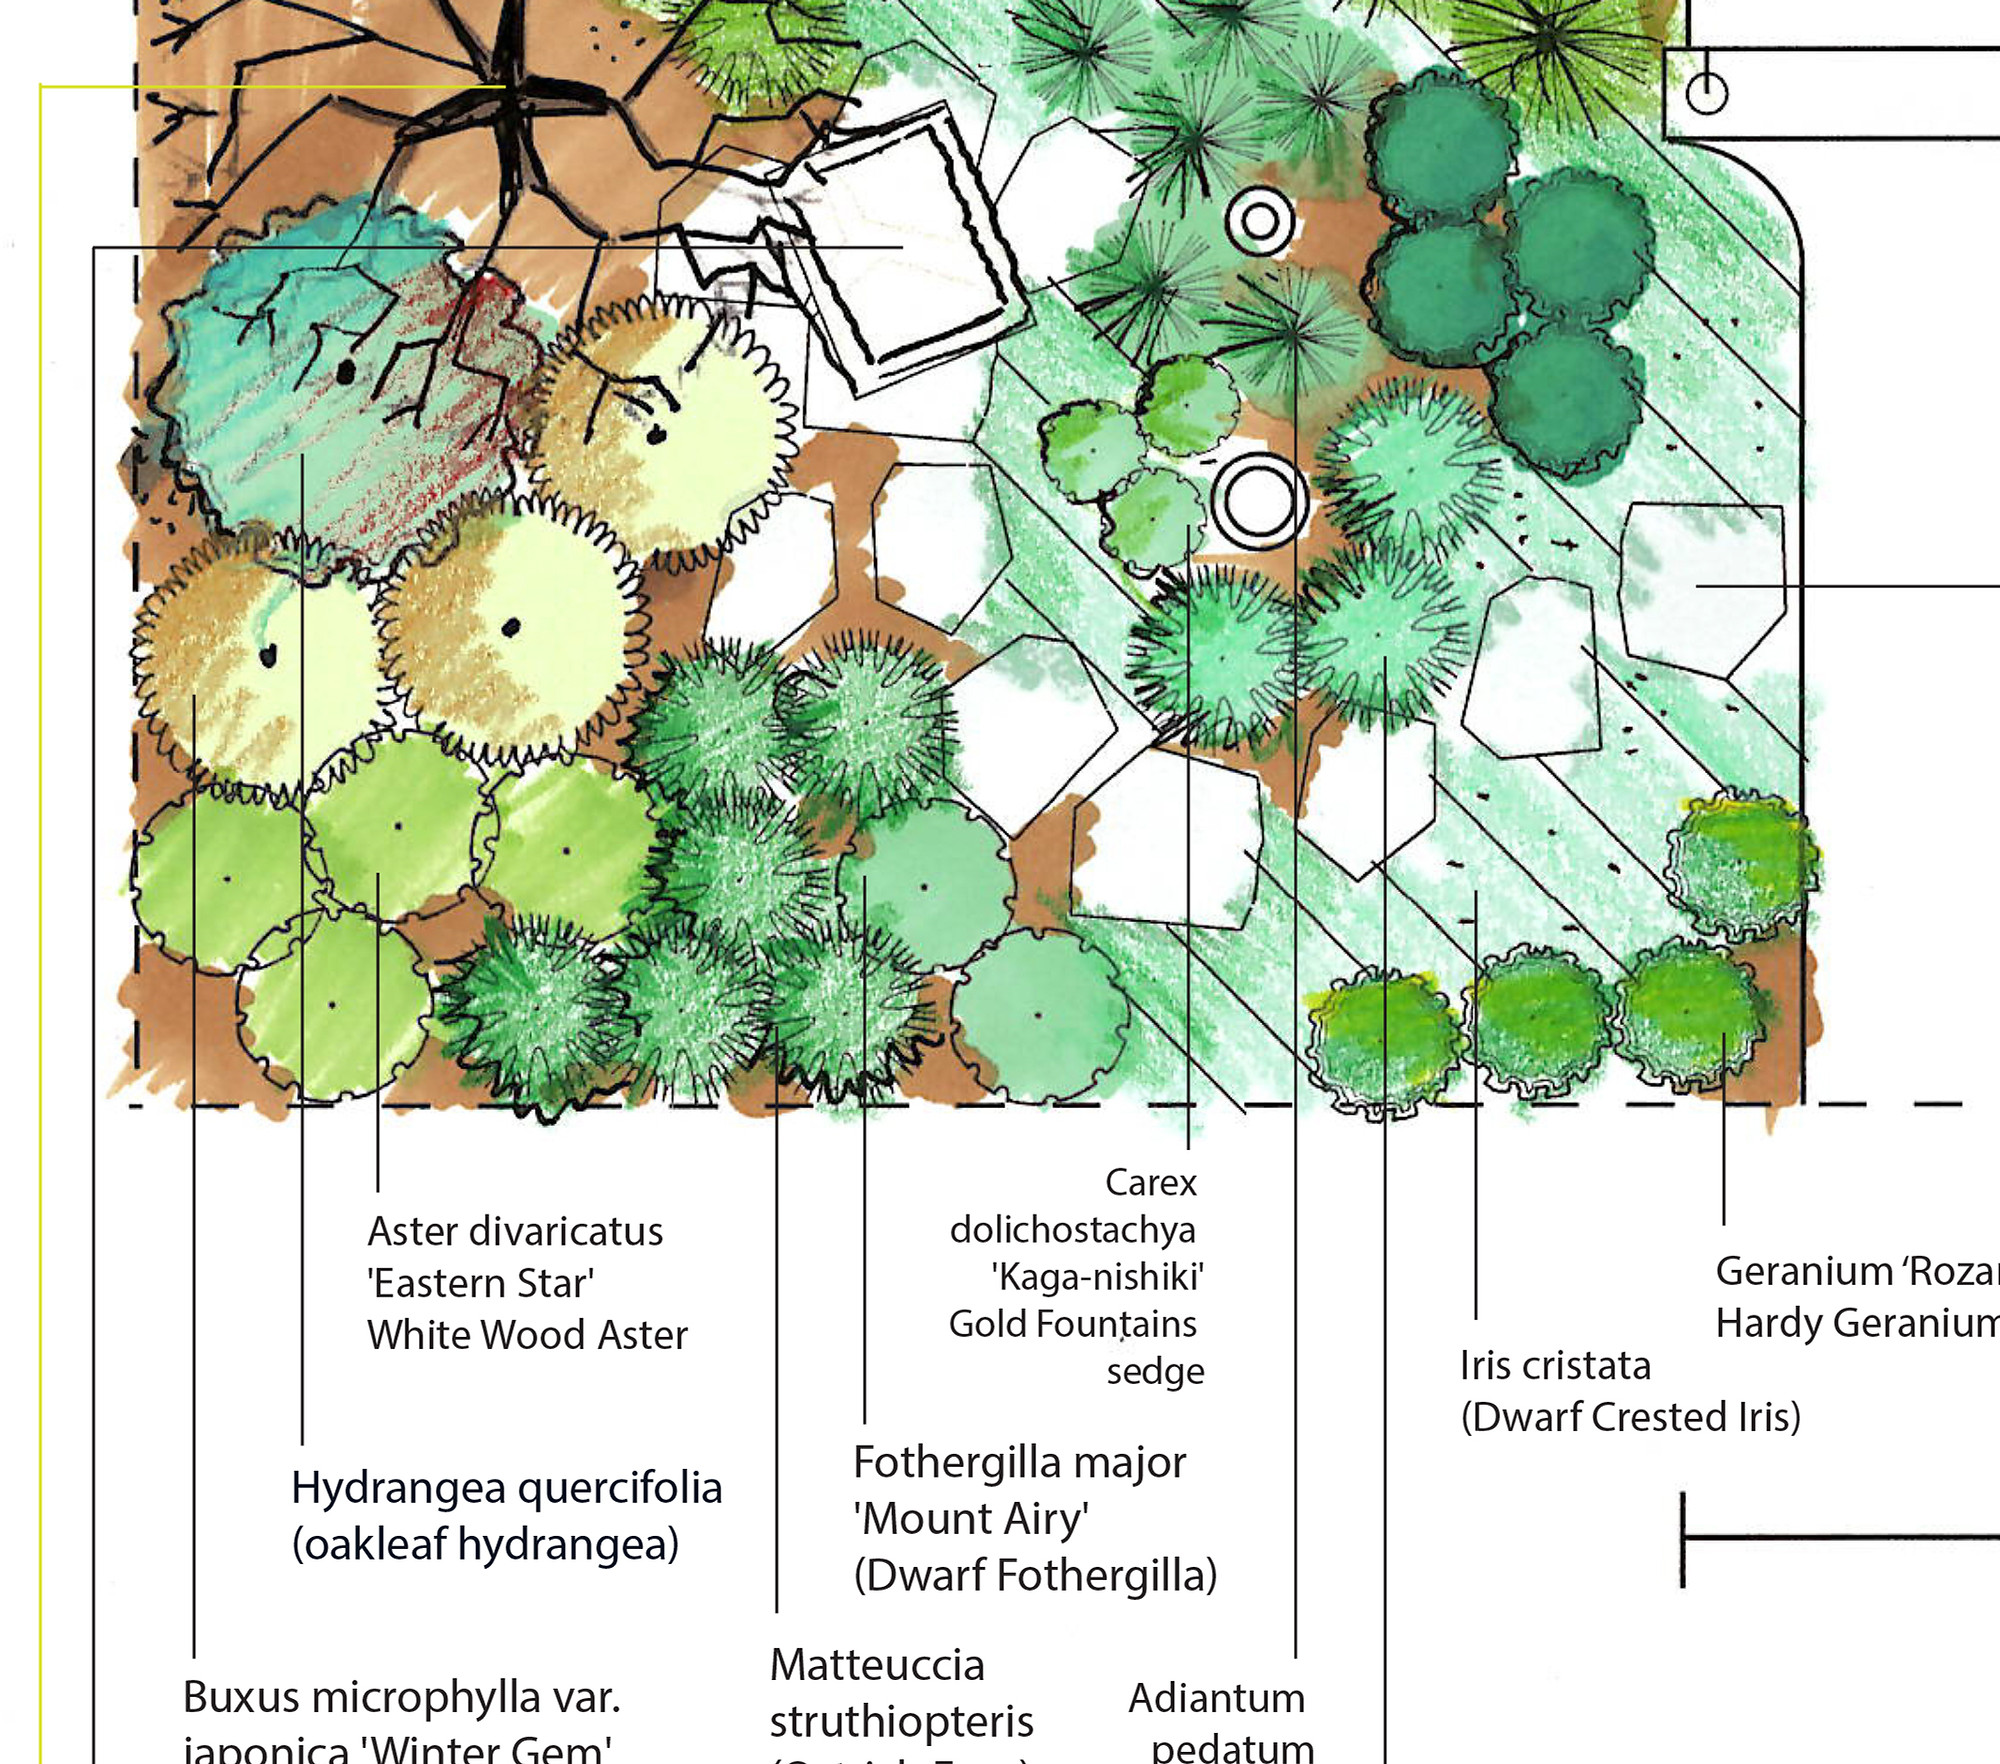 Pollinator Plants For Part Shade To Full Shade Gardens